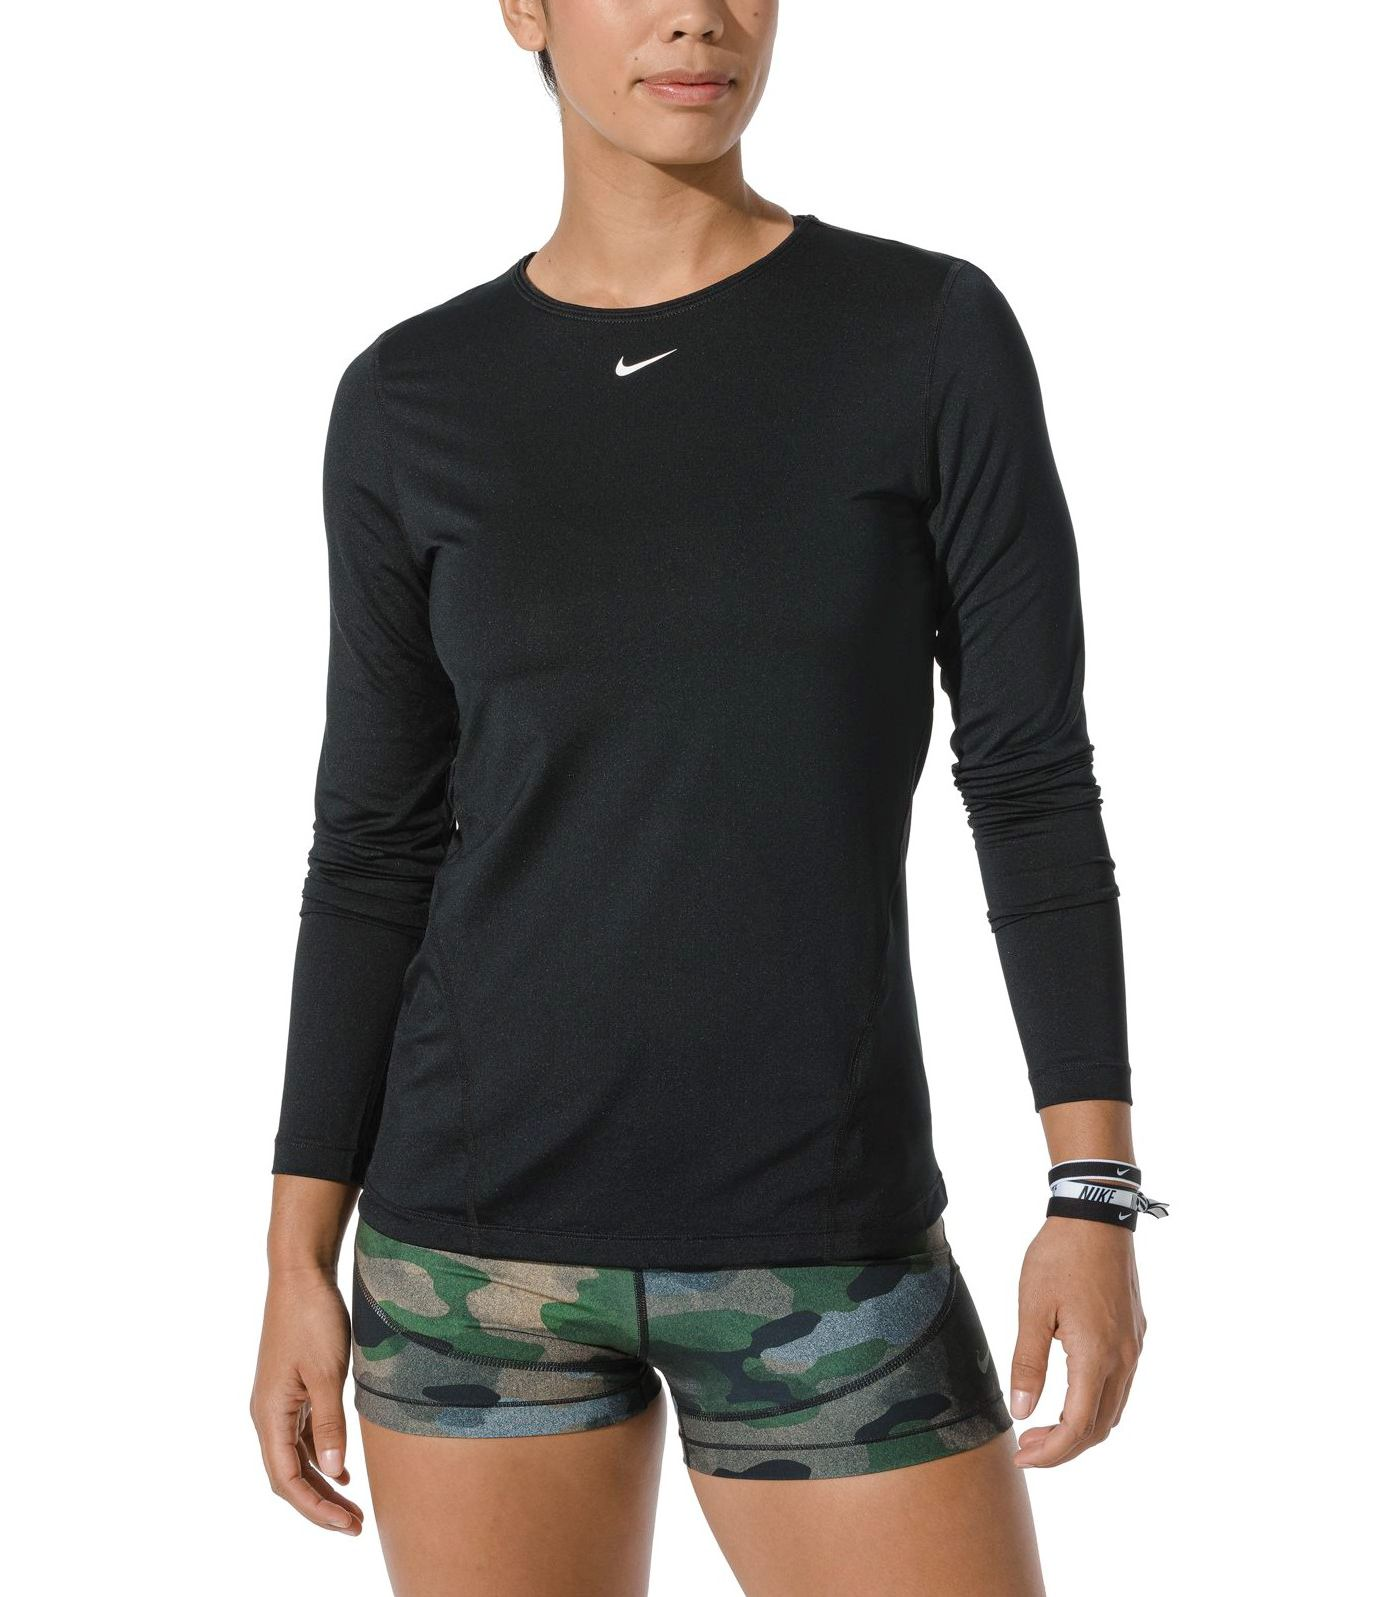 Nike Women's Pro Mesh Long Sleeve Training Top